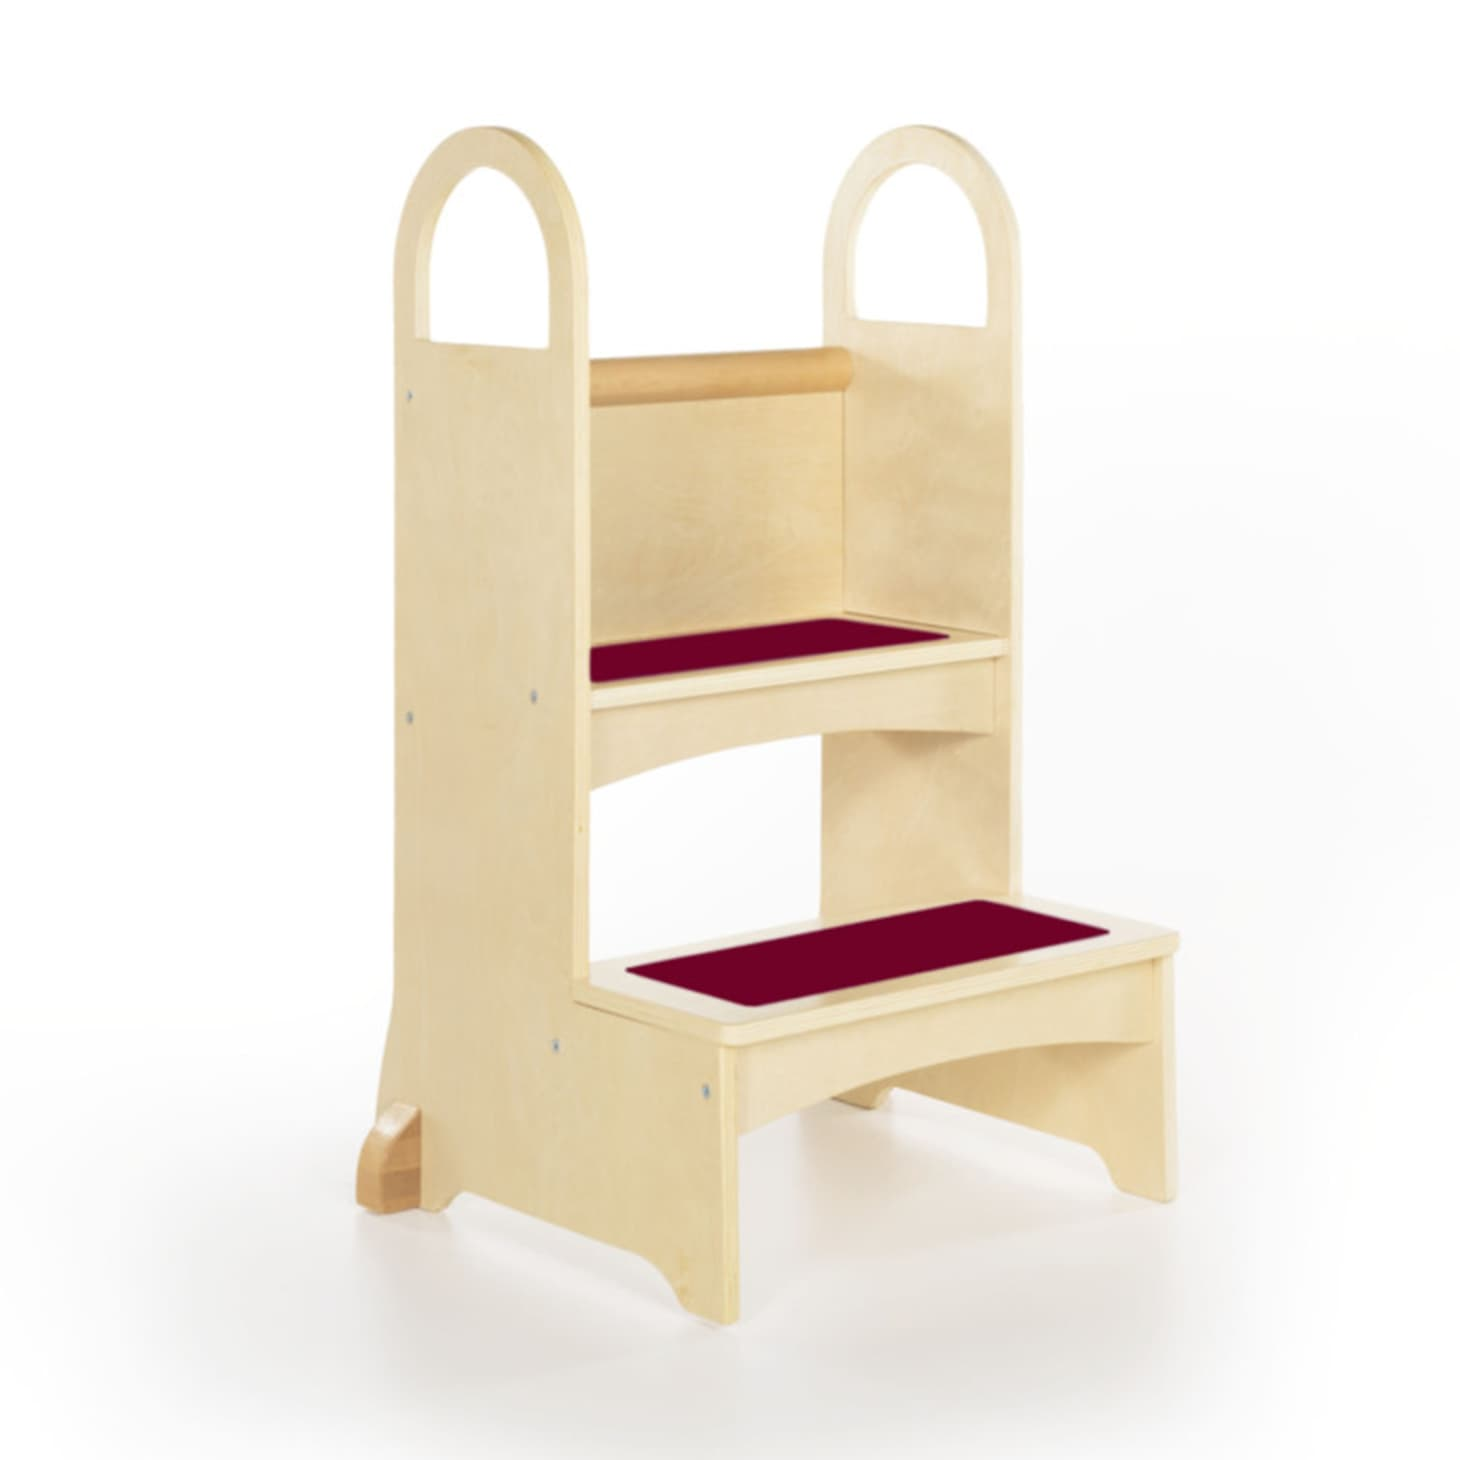 Magnificent Platforms And Step Stools For Kids In The Kitchen Kitchn Caraccident5 Cool Chair Designs And Ideas Caraccident5Info